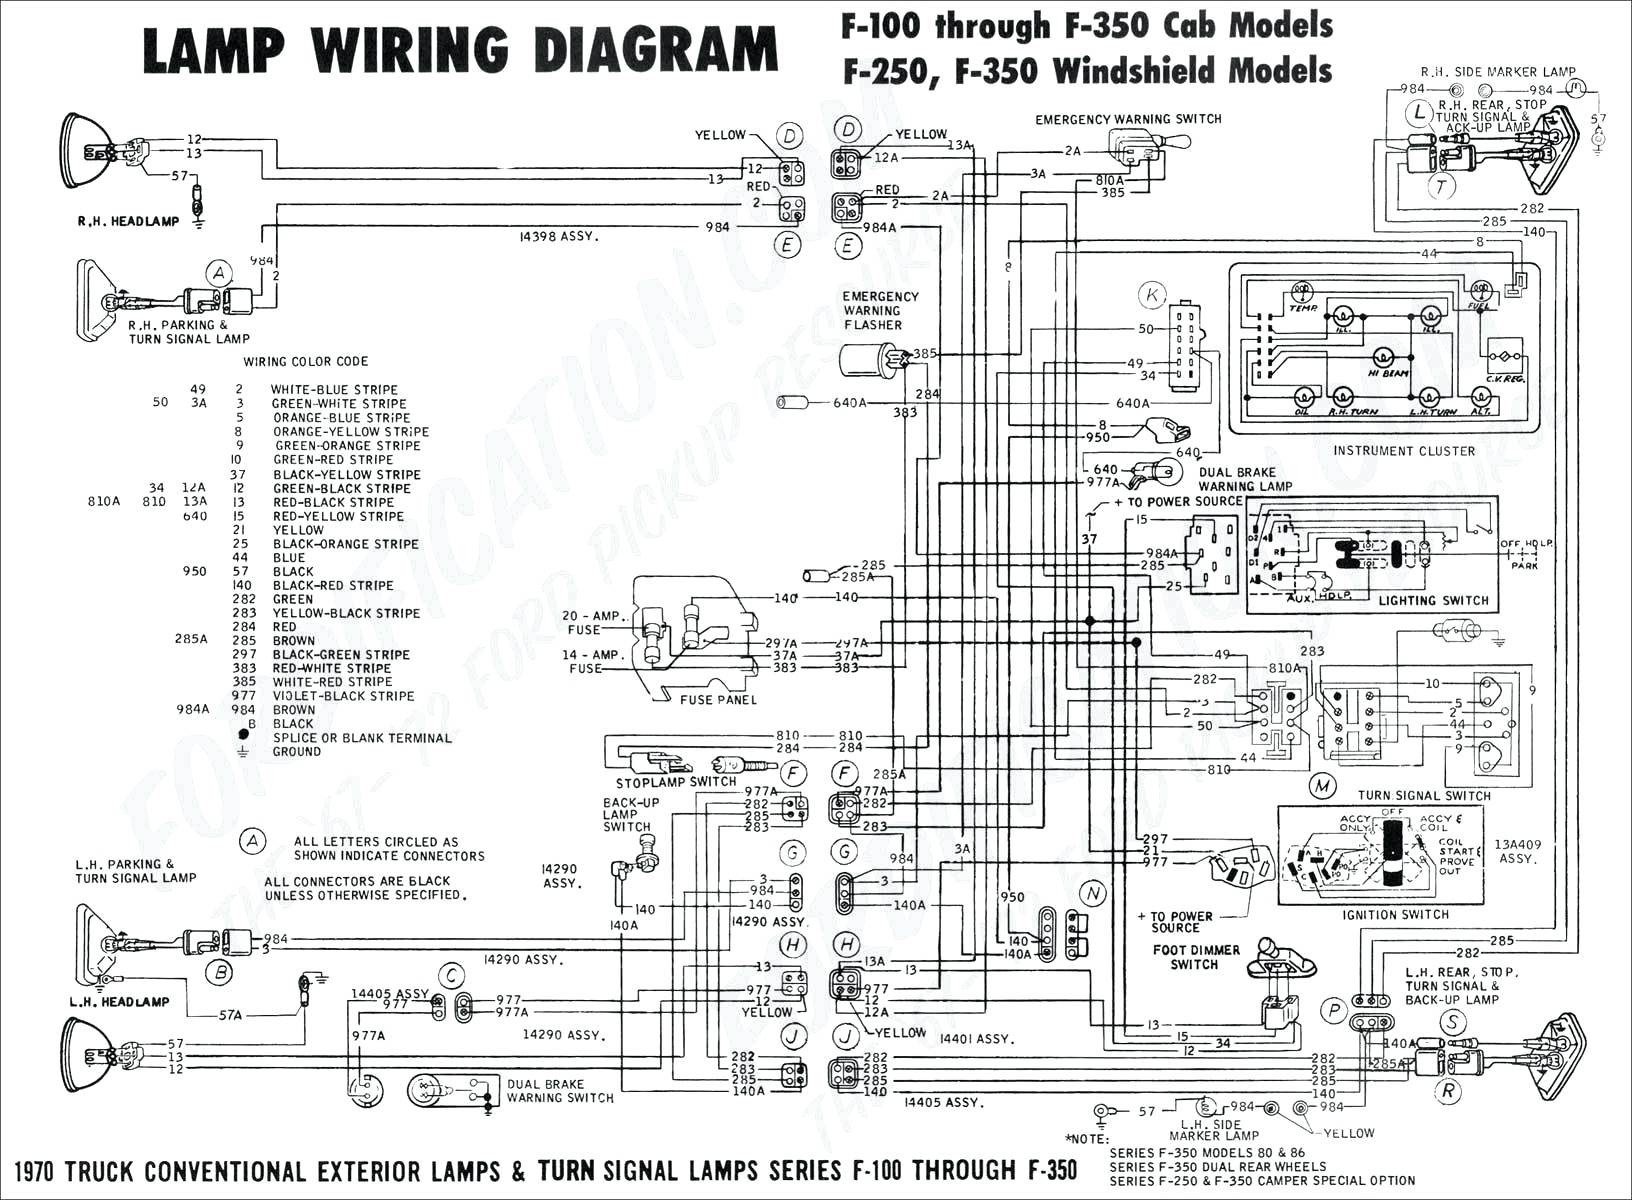 Get 2001 Ford F250 Trailer Wiring Diagram Sample - Ford F250 Wiring Diagram For Trailer Lights